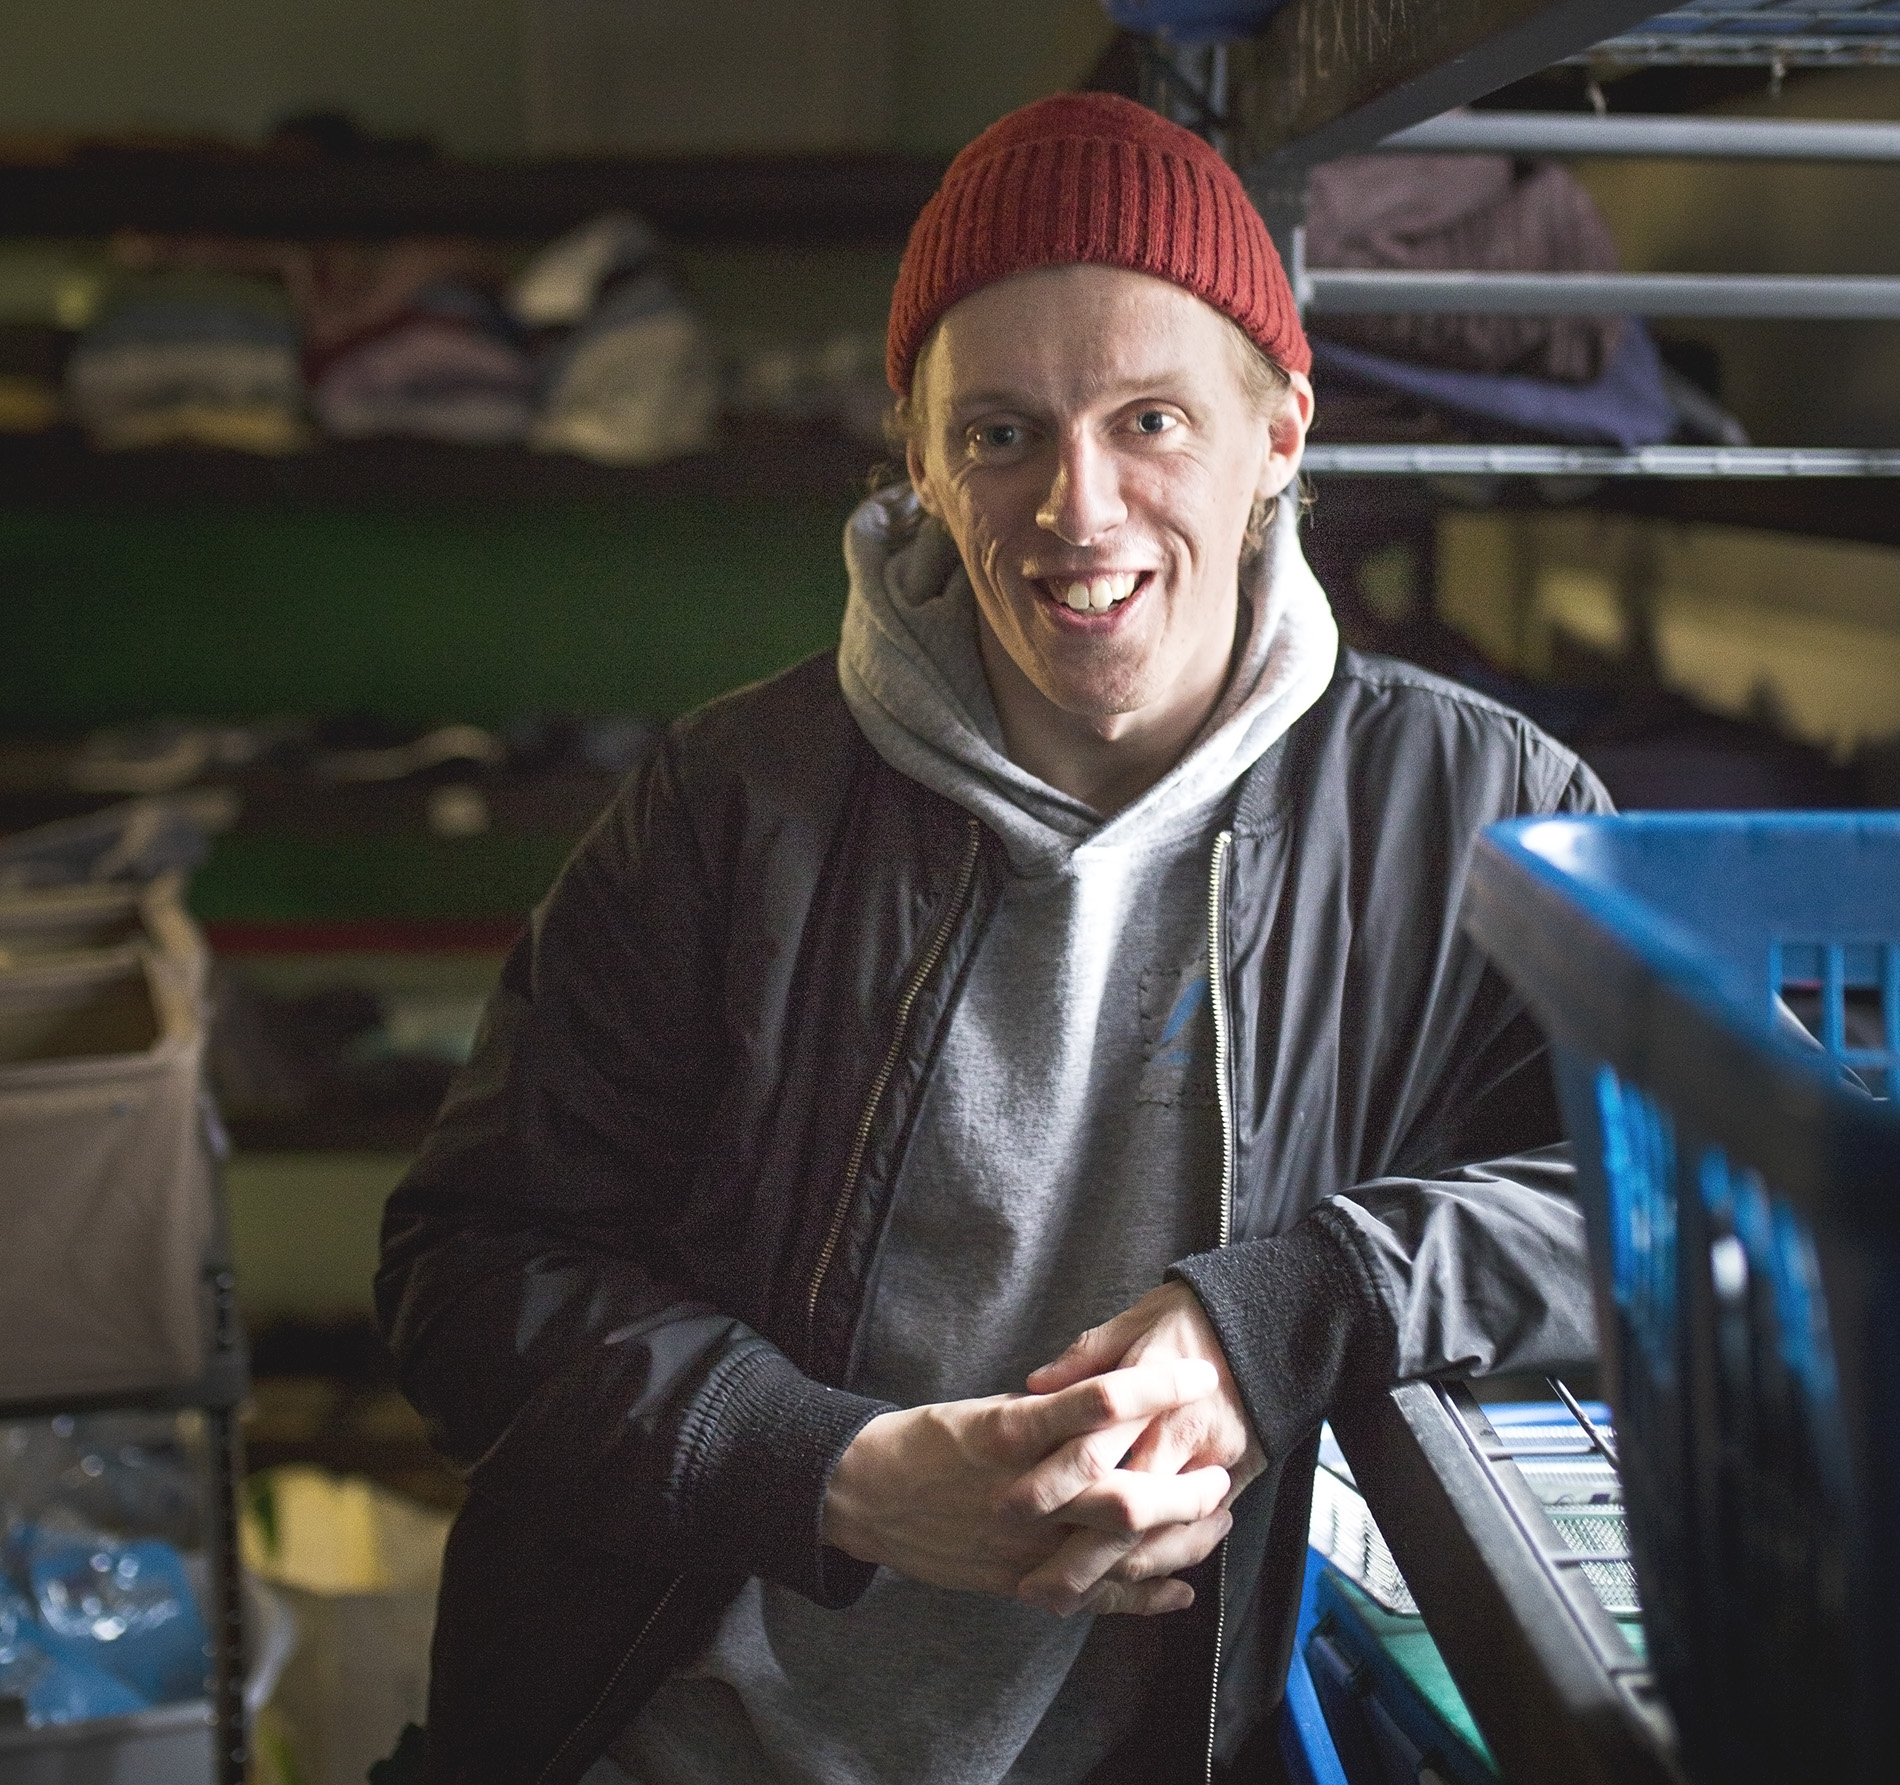 Travis works part time at a local shelter, where he uses his own past to help people experiencing homelessness.